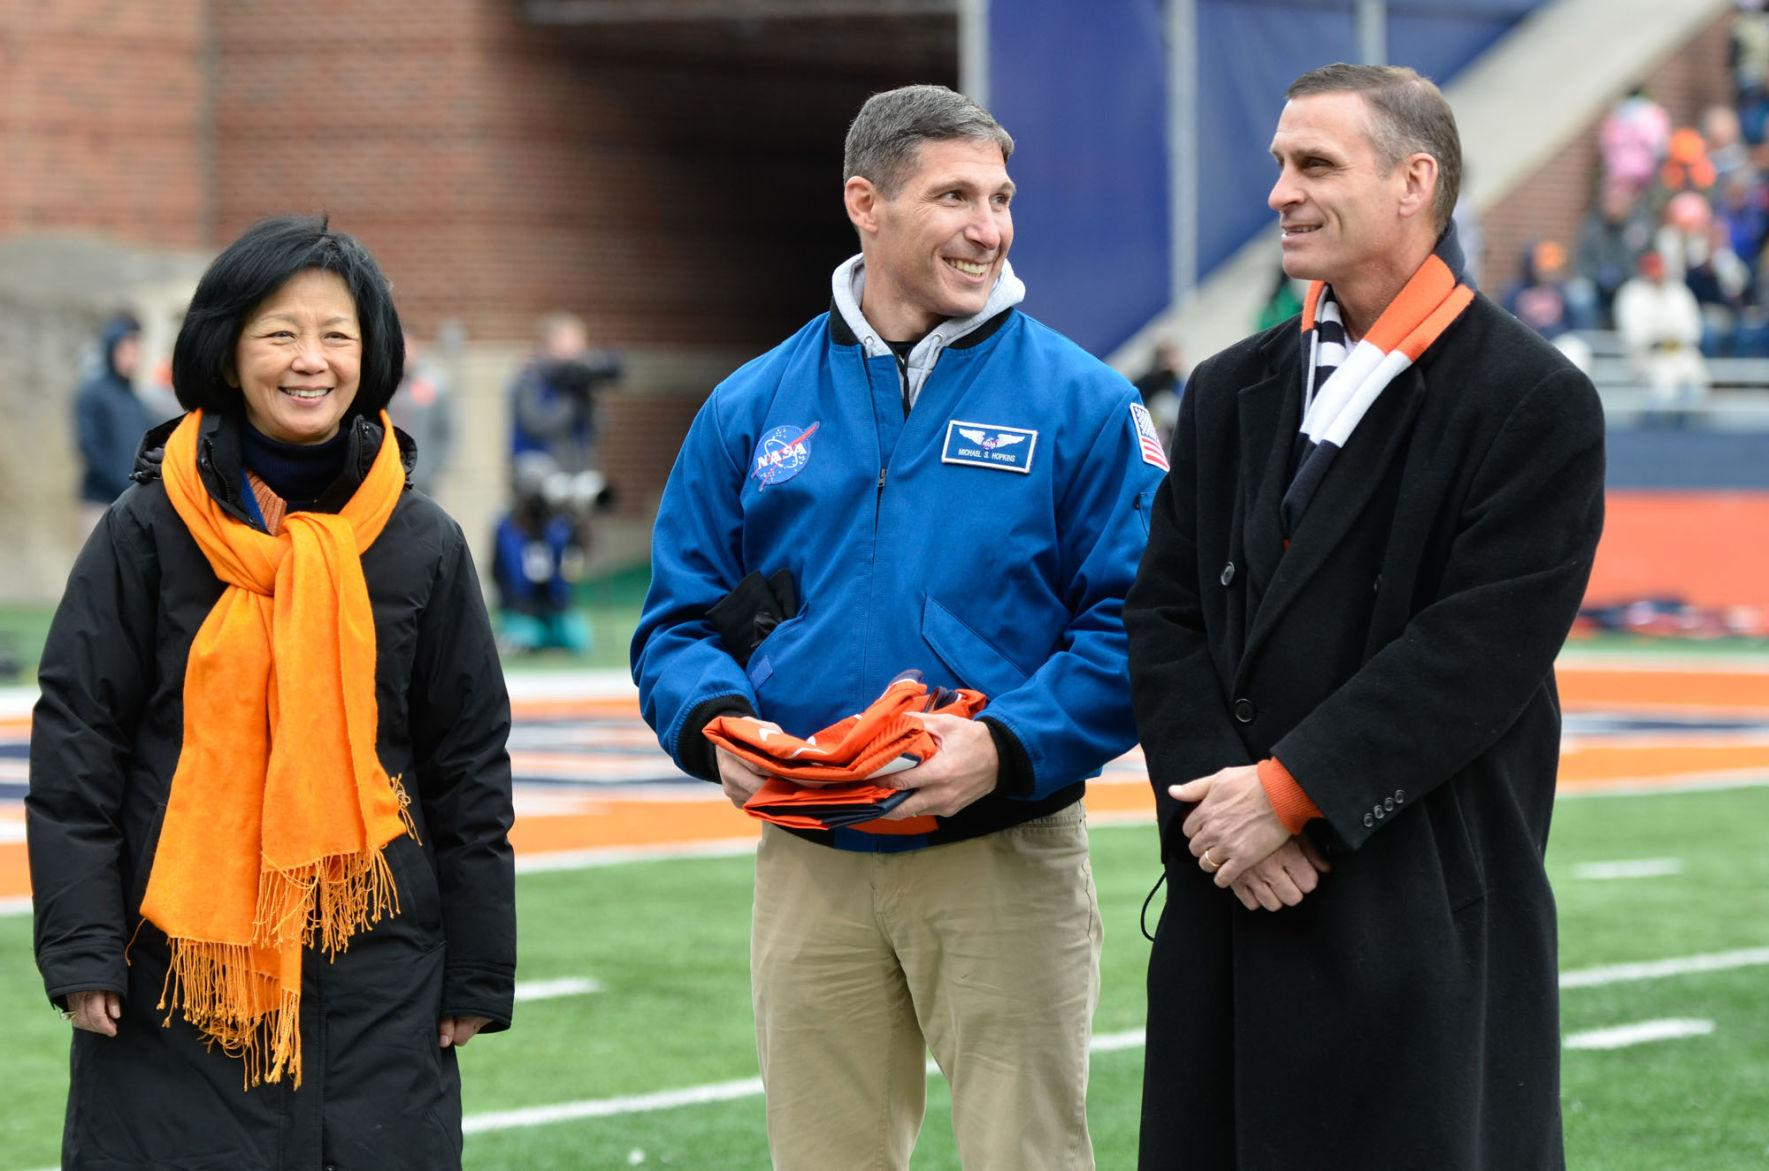 NASA astronaut and former Illini Mike Hopkins presents a jersey and flag to Chancellor Phyllis Wise and Athletic Director Mike Thomas during the game against Iowa at Memorial Stadium on Saturday, Nov. 15, 2014. Thomas responded Monday to Simon Cvijanovic's Twitter accusations of Tim Beckman.